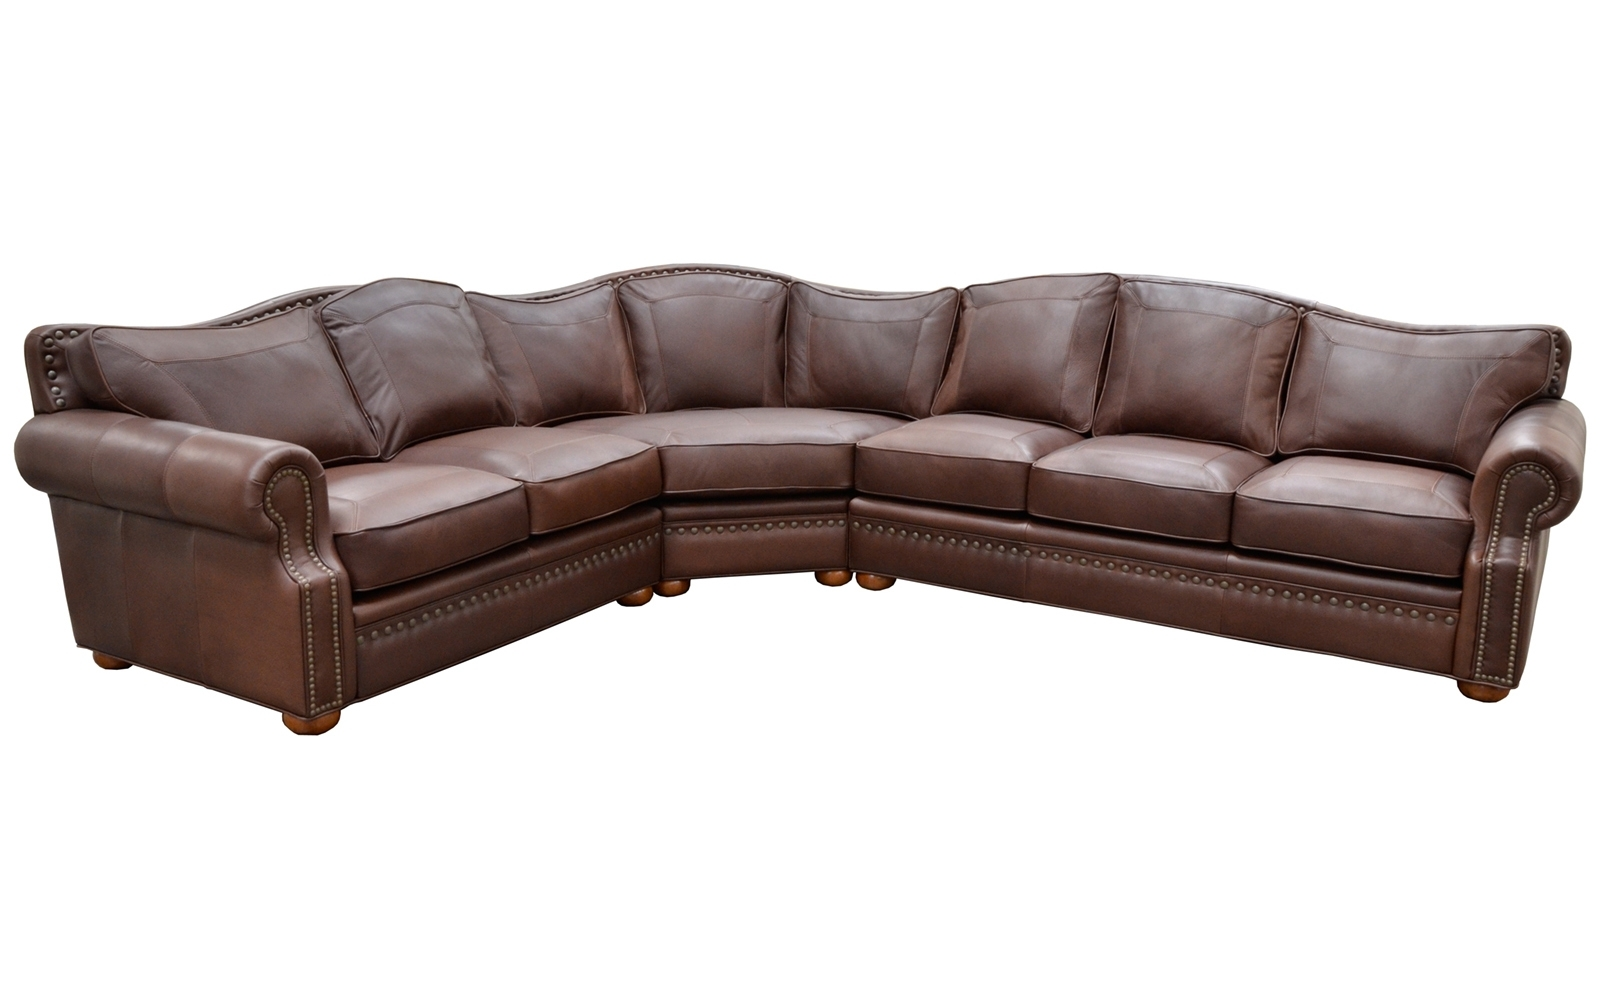 Newest Tucson Sectional Sofas Regarding Tucson Sectional – Arizona Leather Interiors (View 3 of 15)